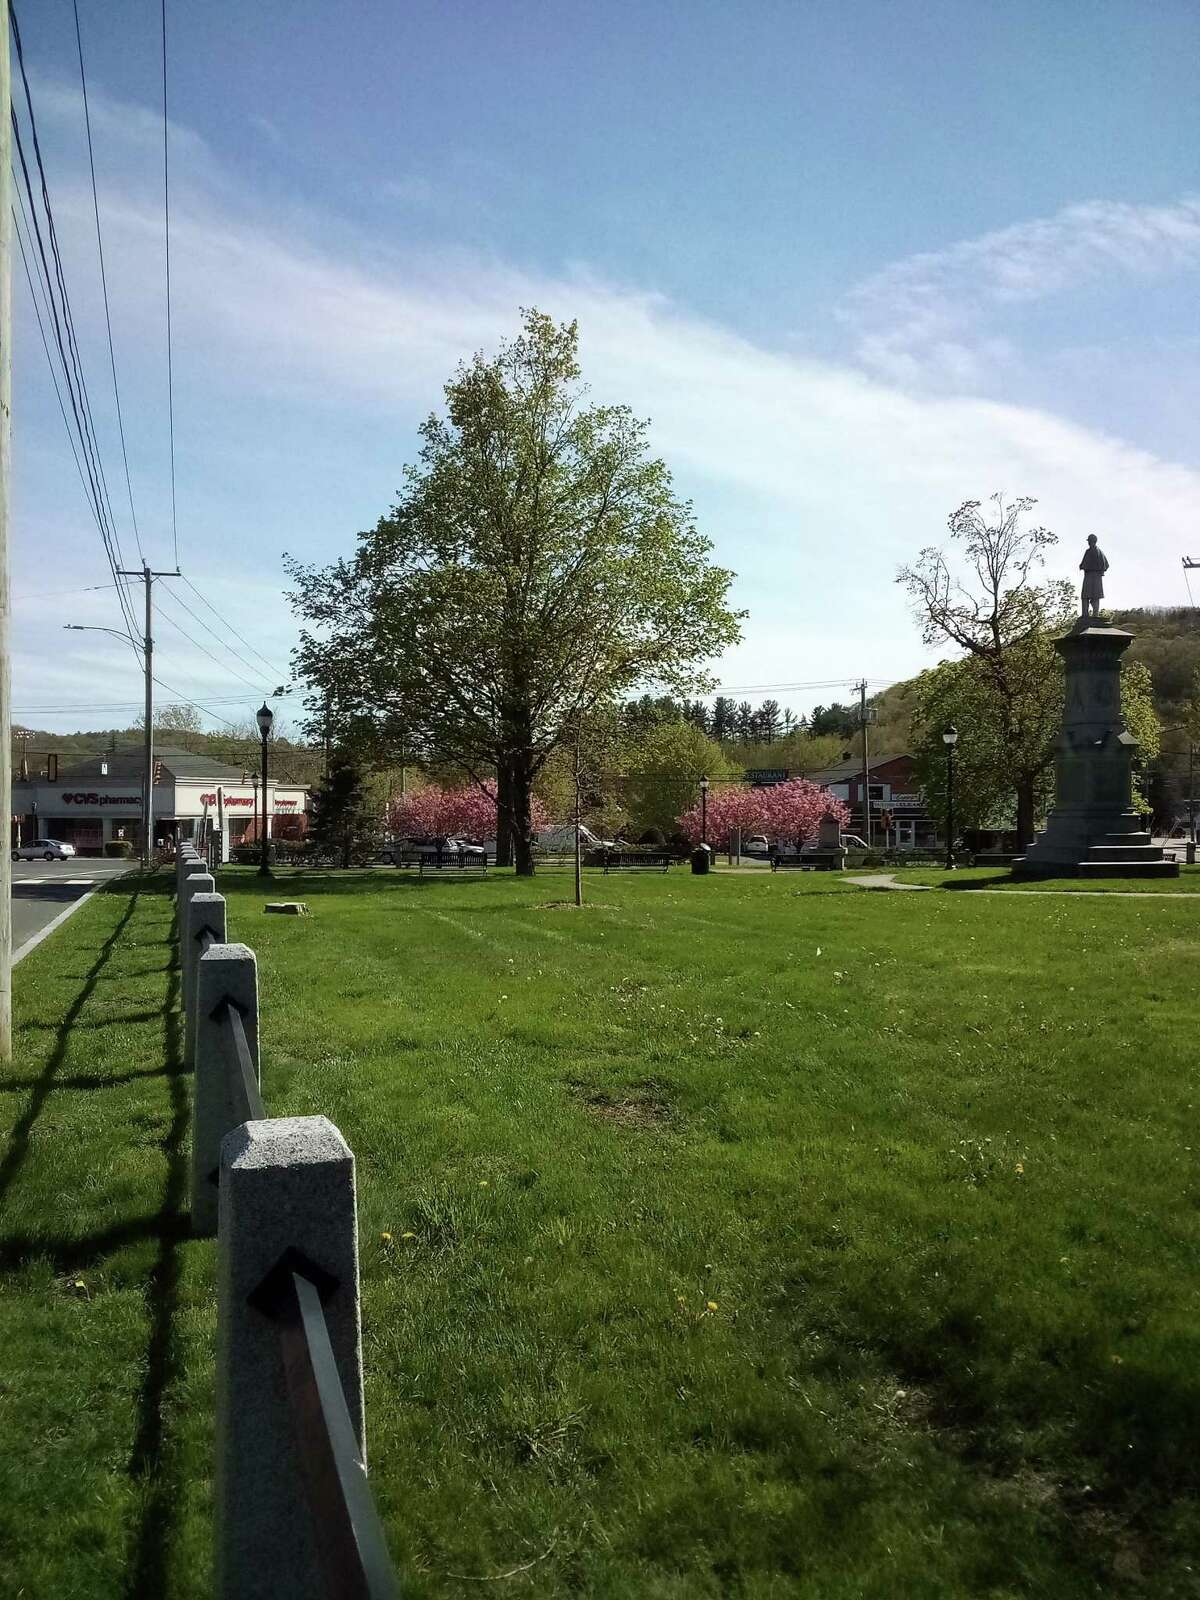 The Gilbert School in Winsted plans to hold its graduation ceremonies at East End Park, across from Northwestern CT Community College. A senior night is scheduled on campus the night before.